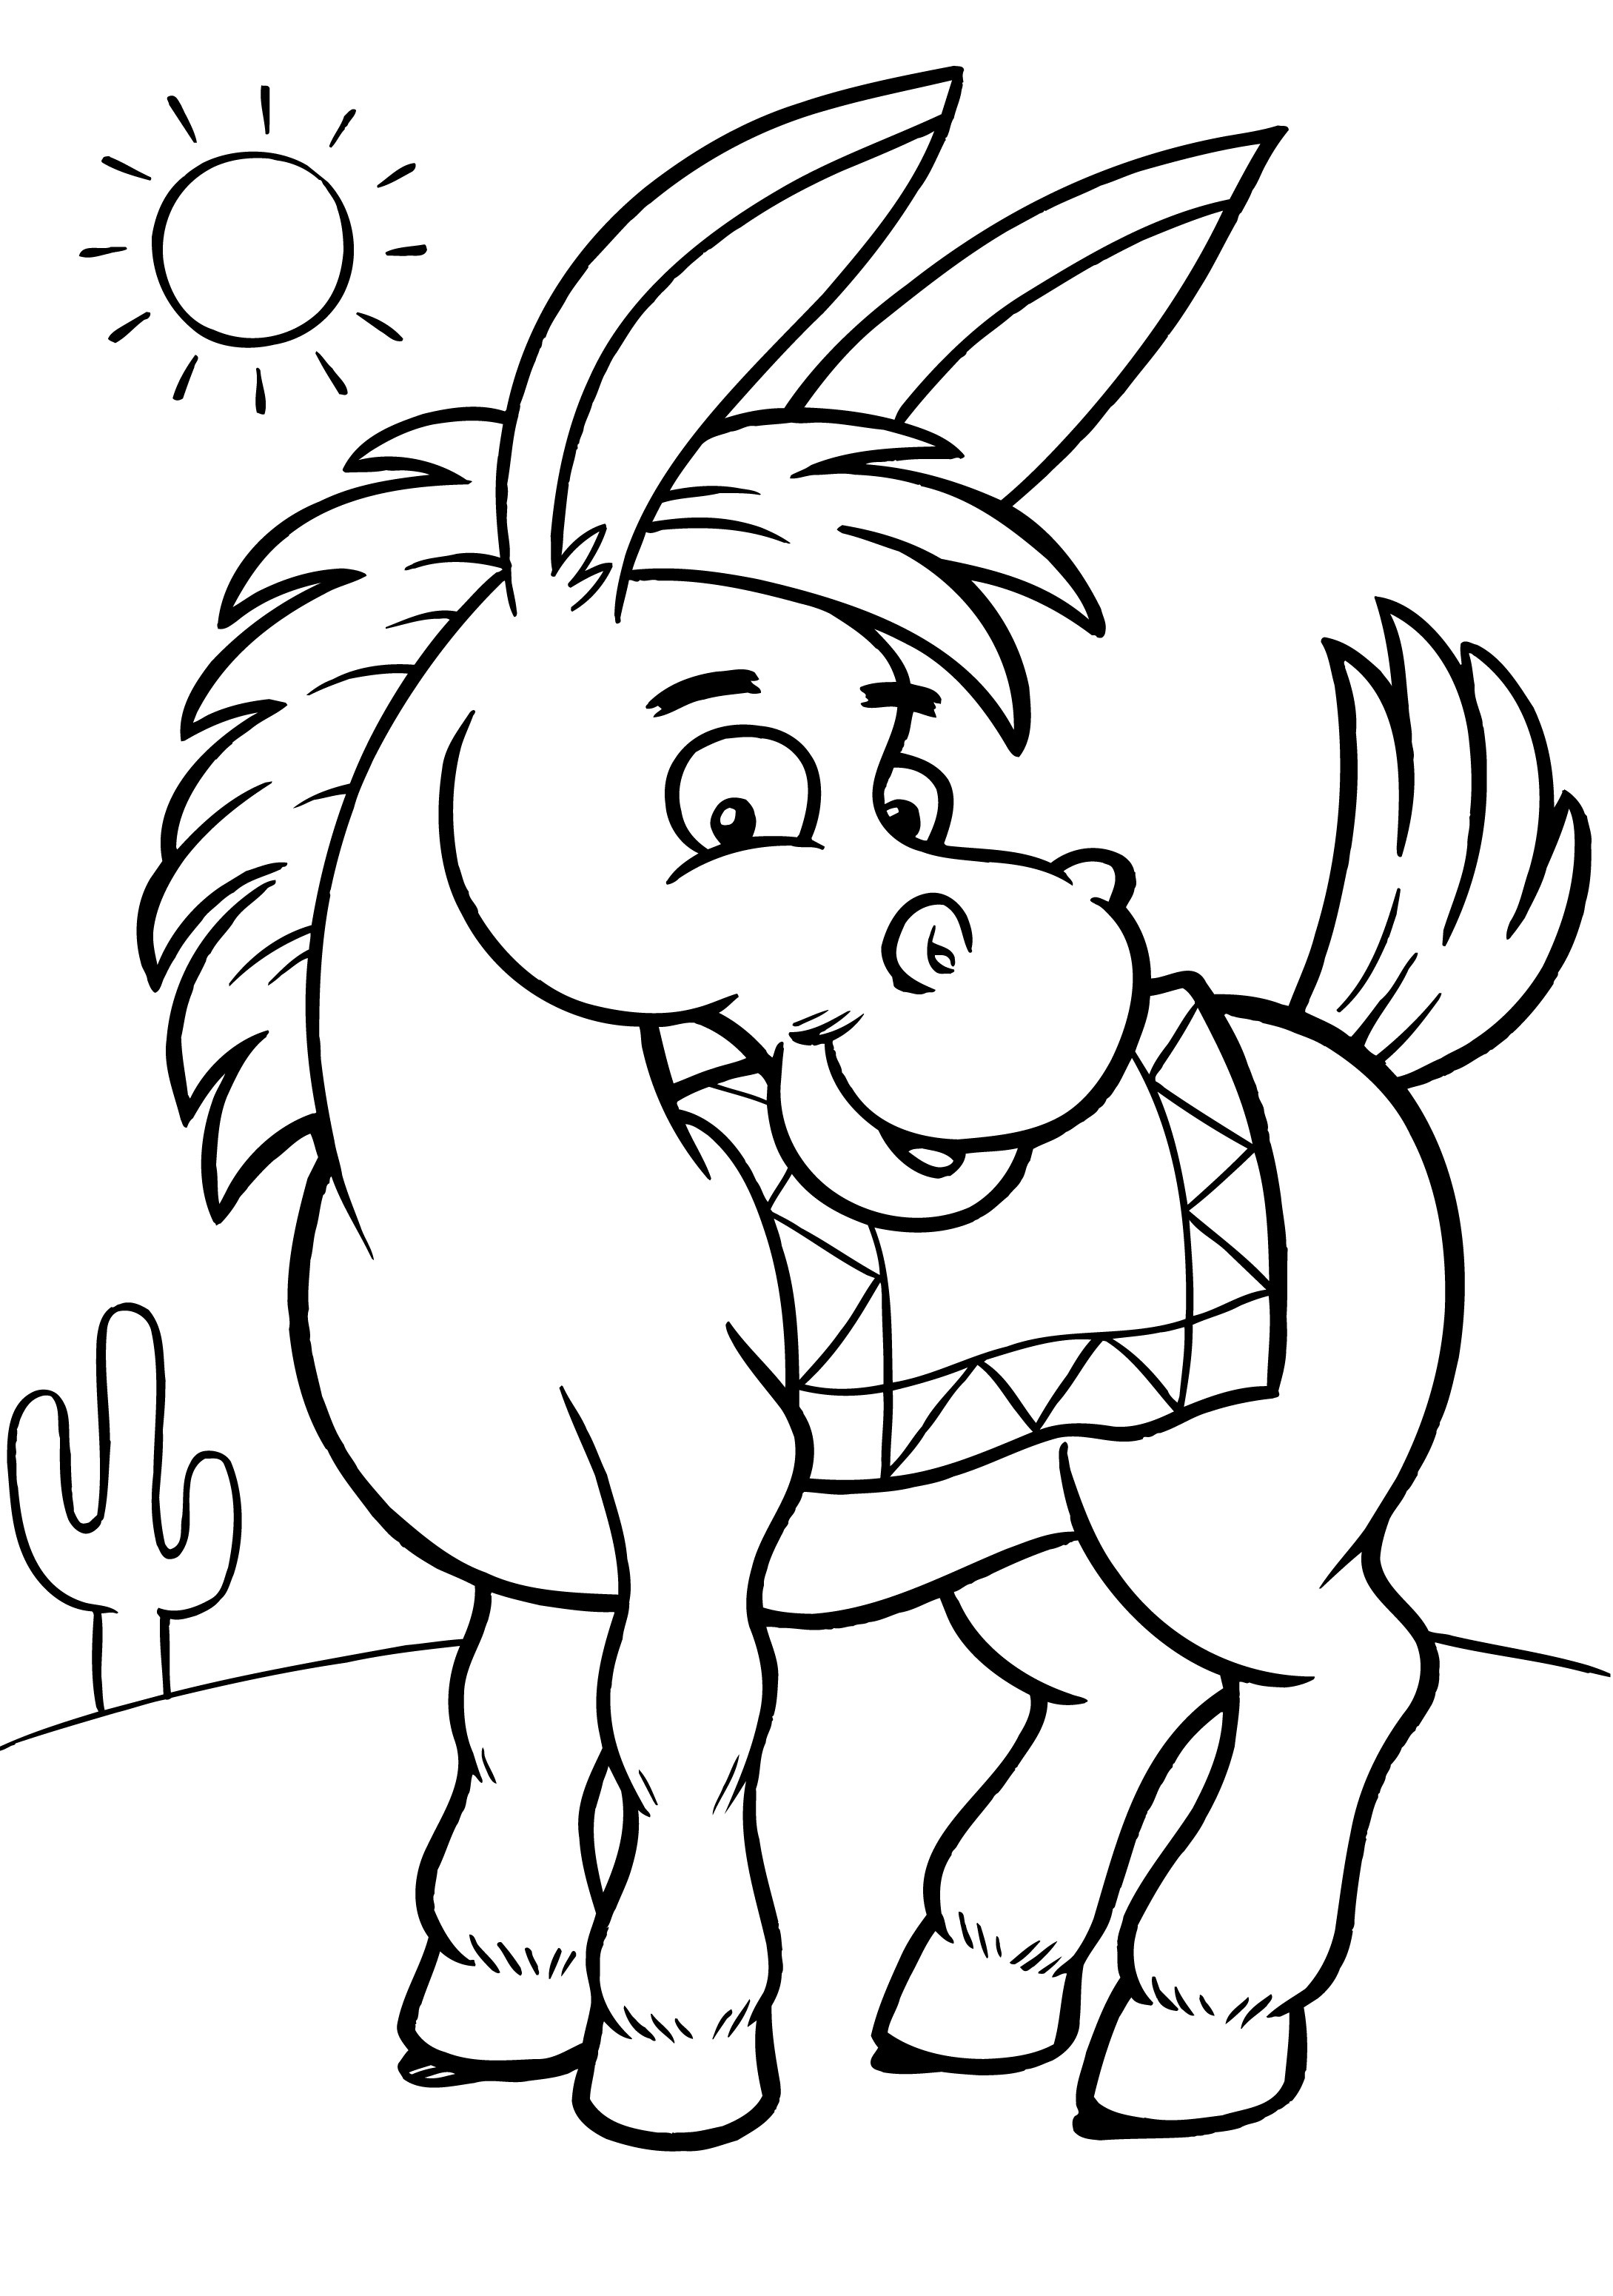 donkey pictures to print donkey coloring pages for kids preschool and kindergarten pictures donkey to print